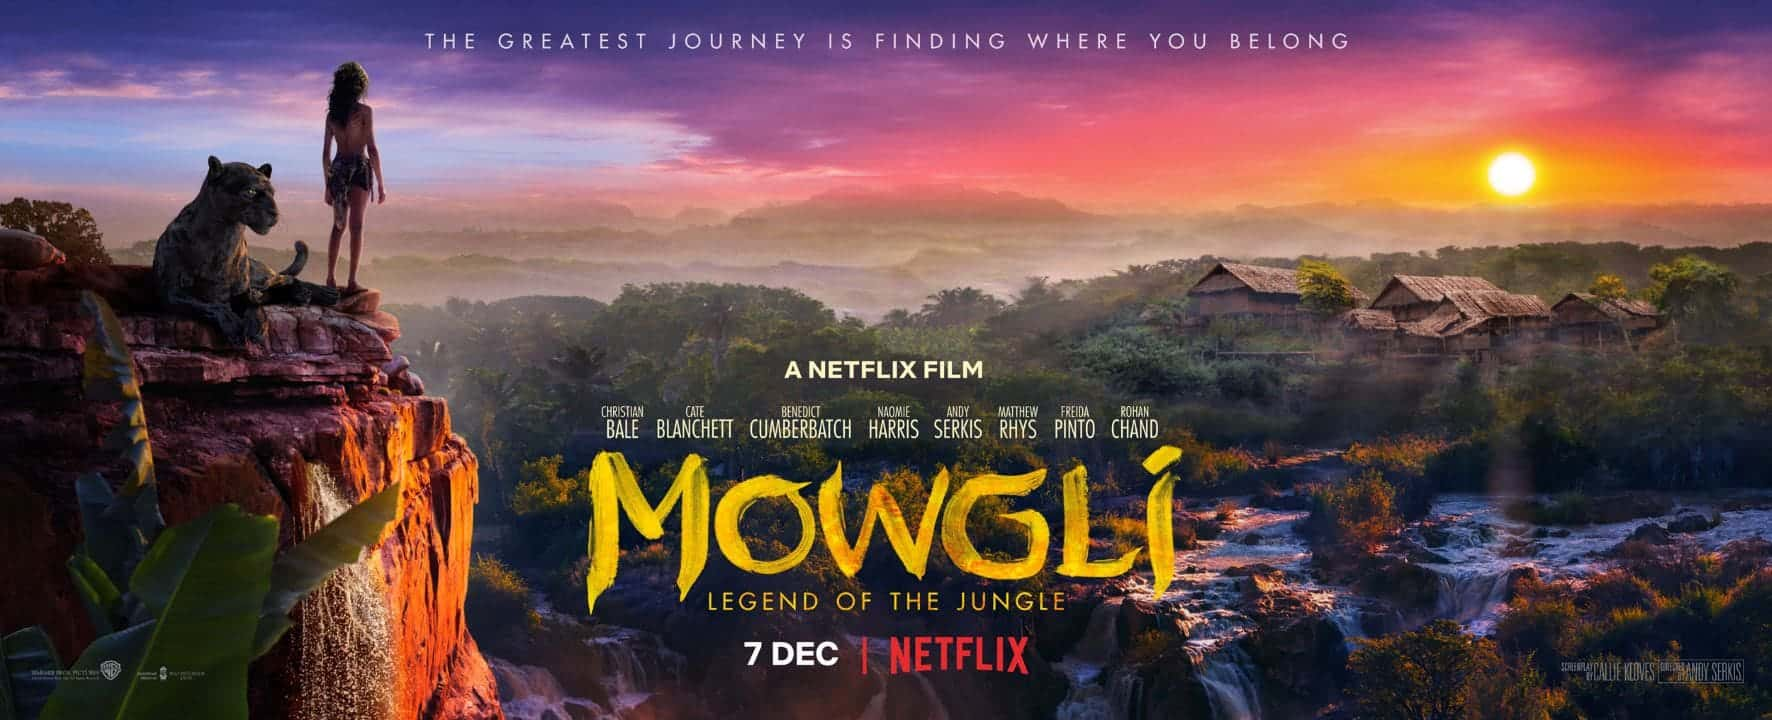 Mowgli: Legend of the Jungle (2018)